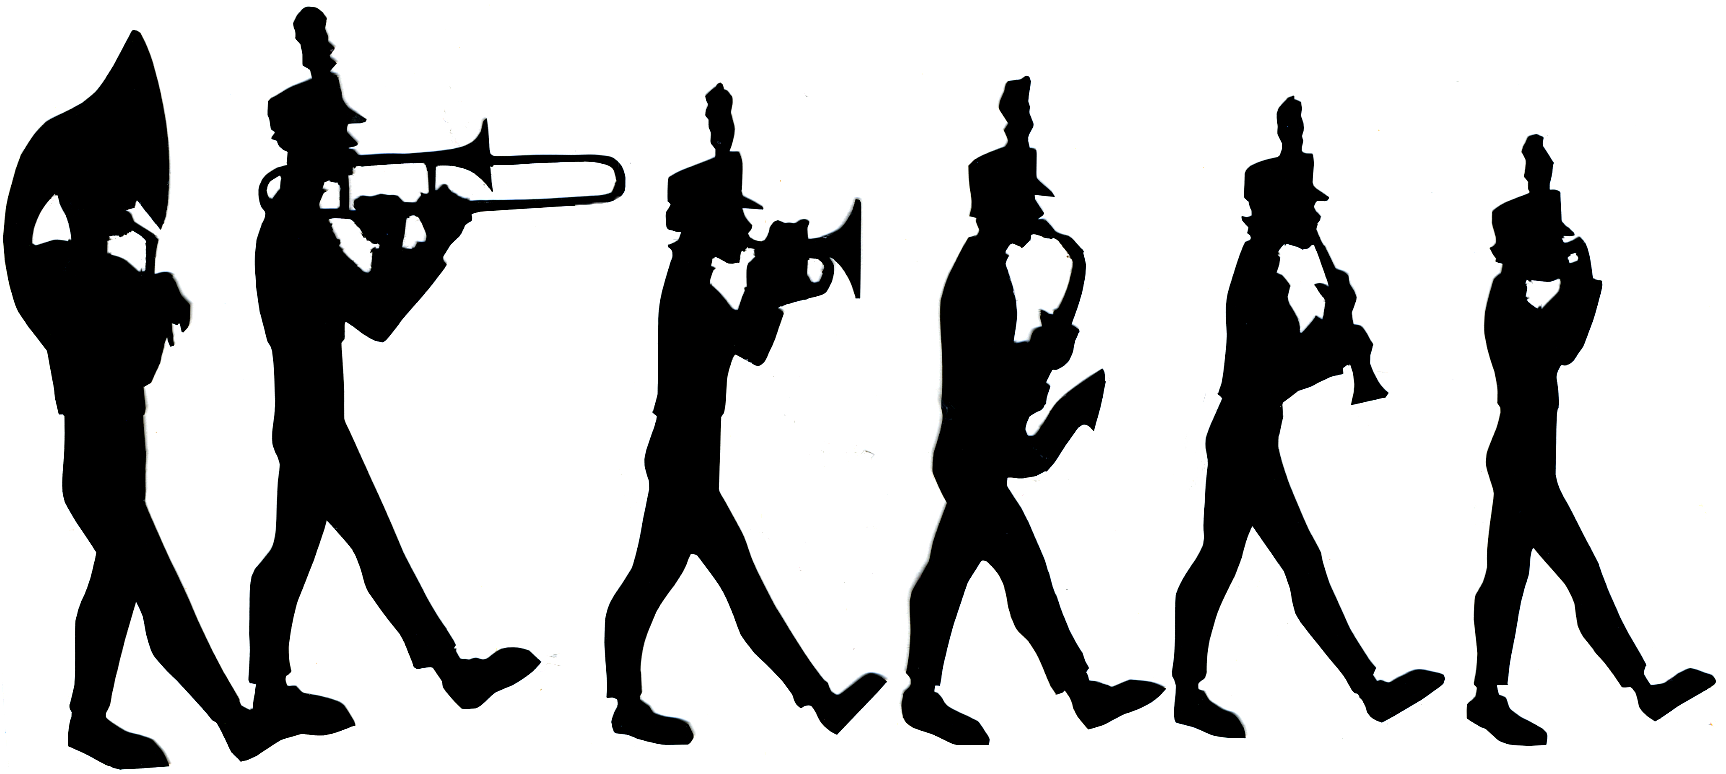 1726x774 Marching Band Clipart Silhouette